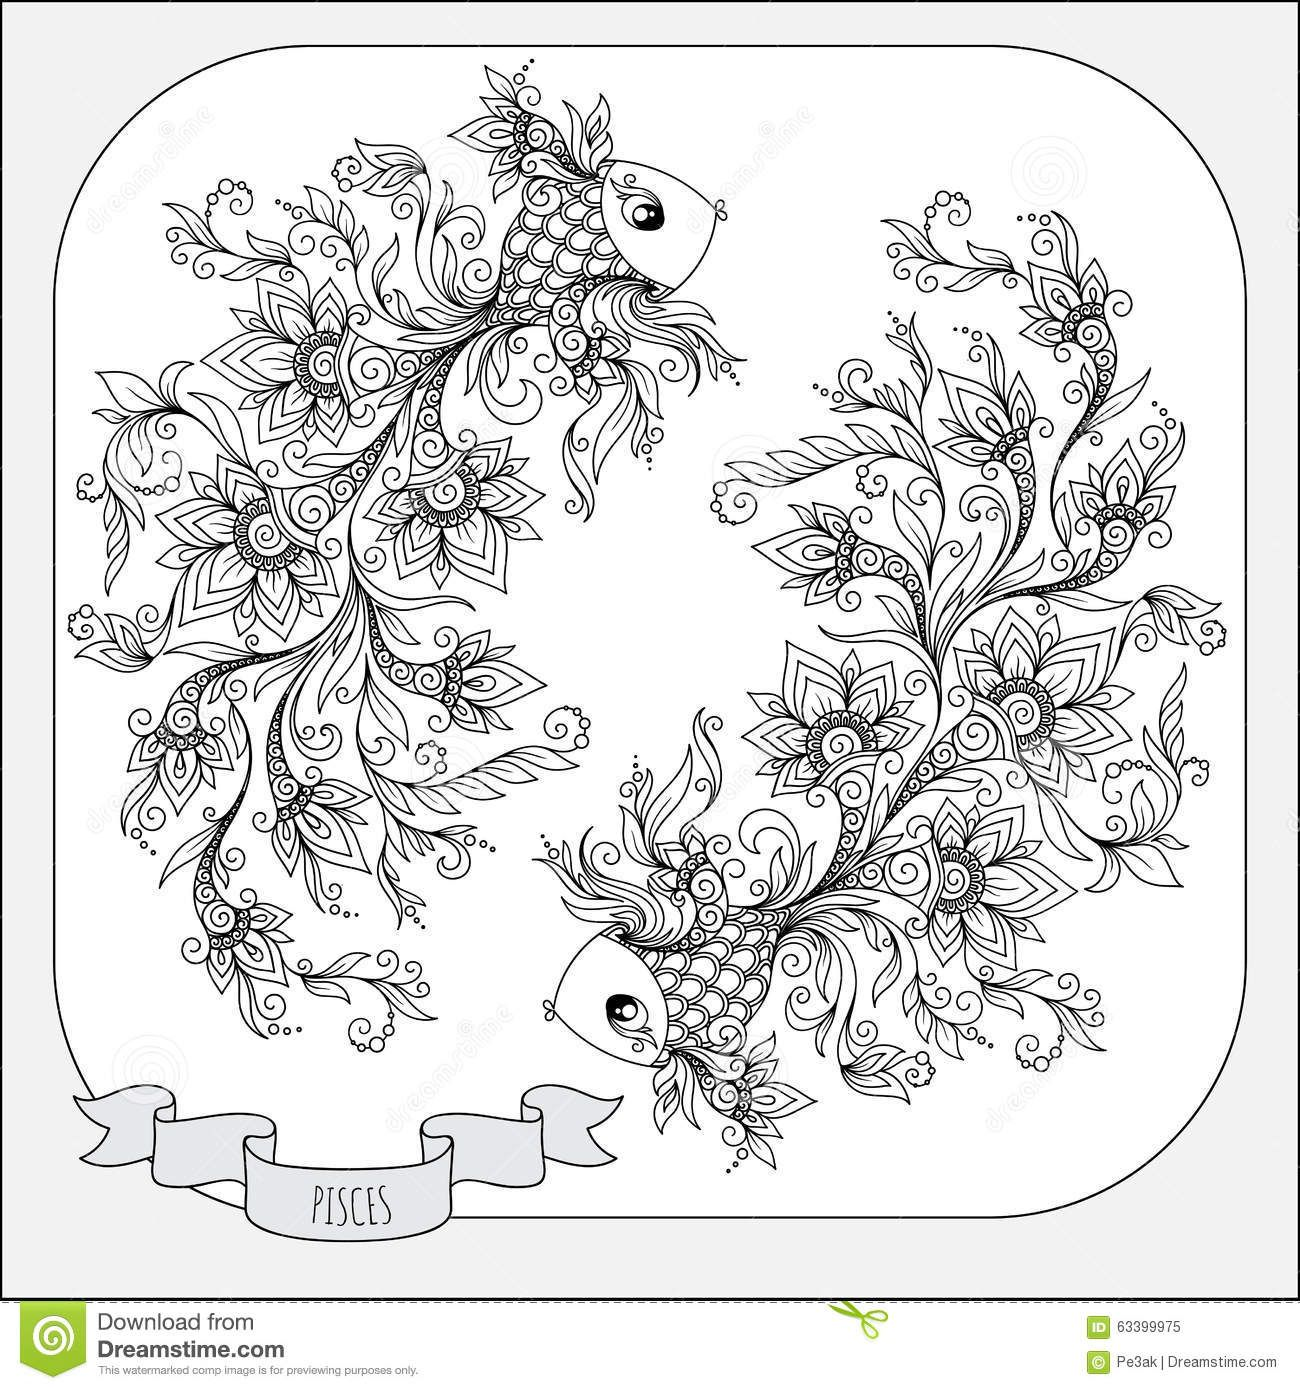 Pisces Coloring Page Pattern For Coloring Book Hand Drawn Line